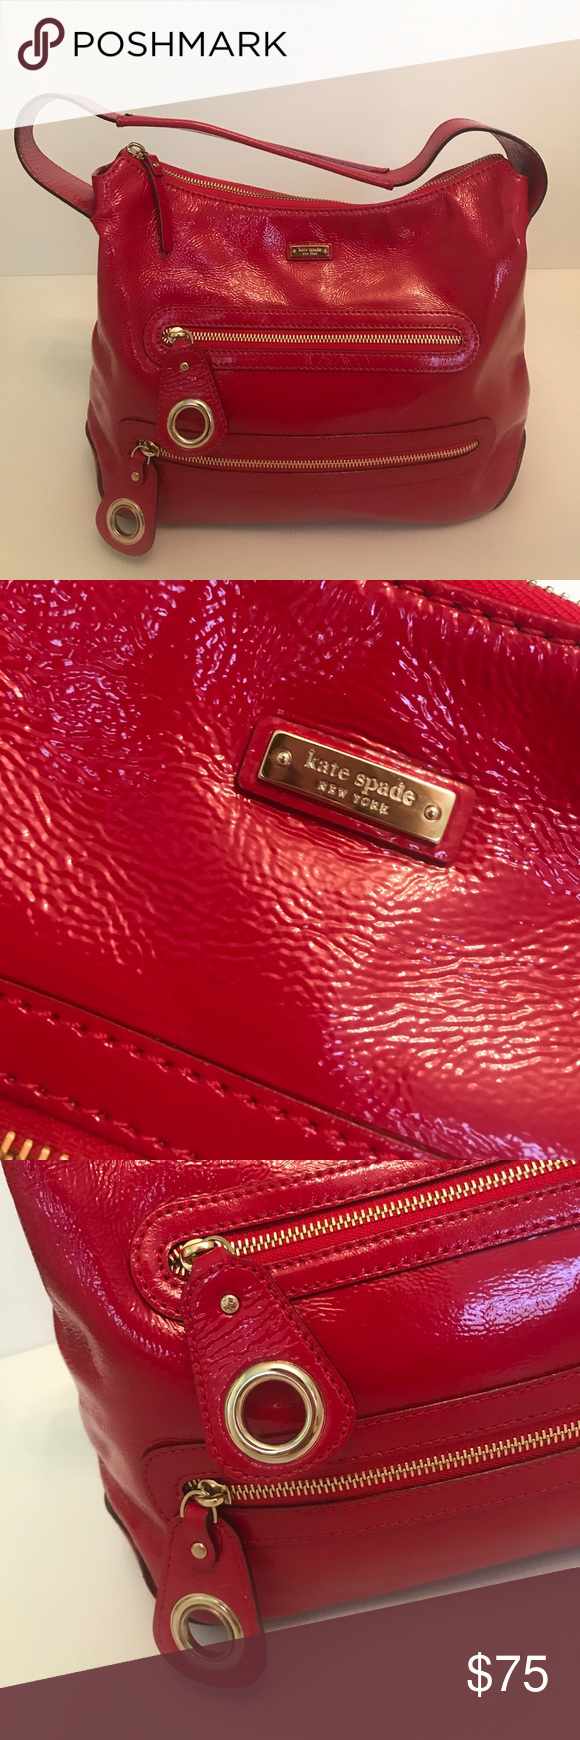 Kate Spade Red Patent Leather Purse